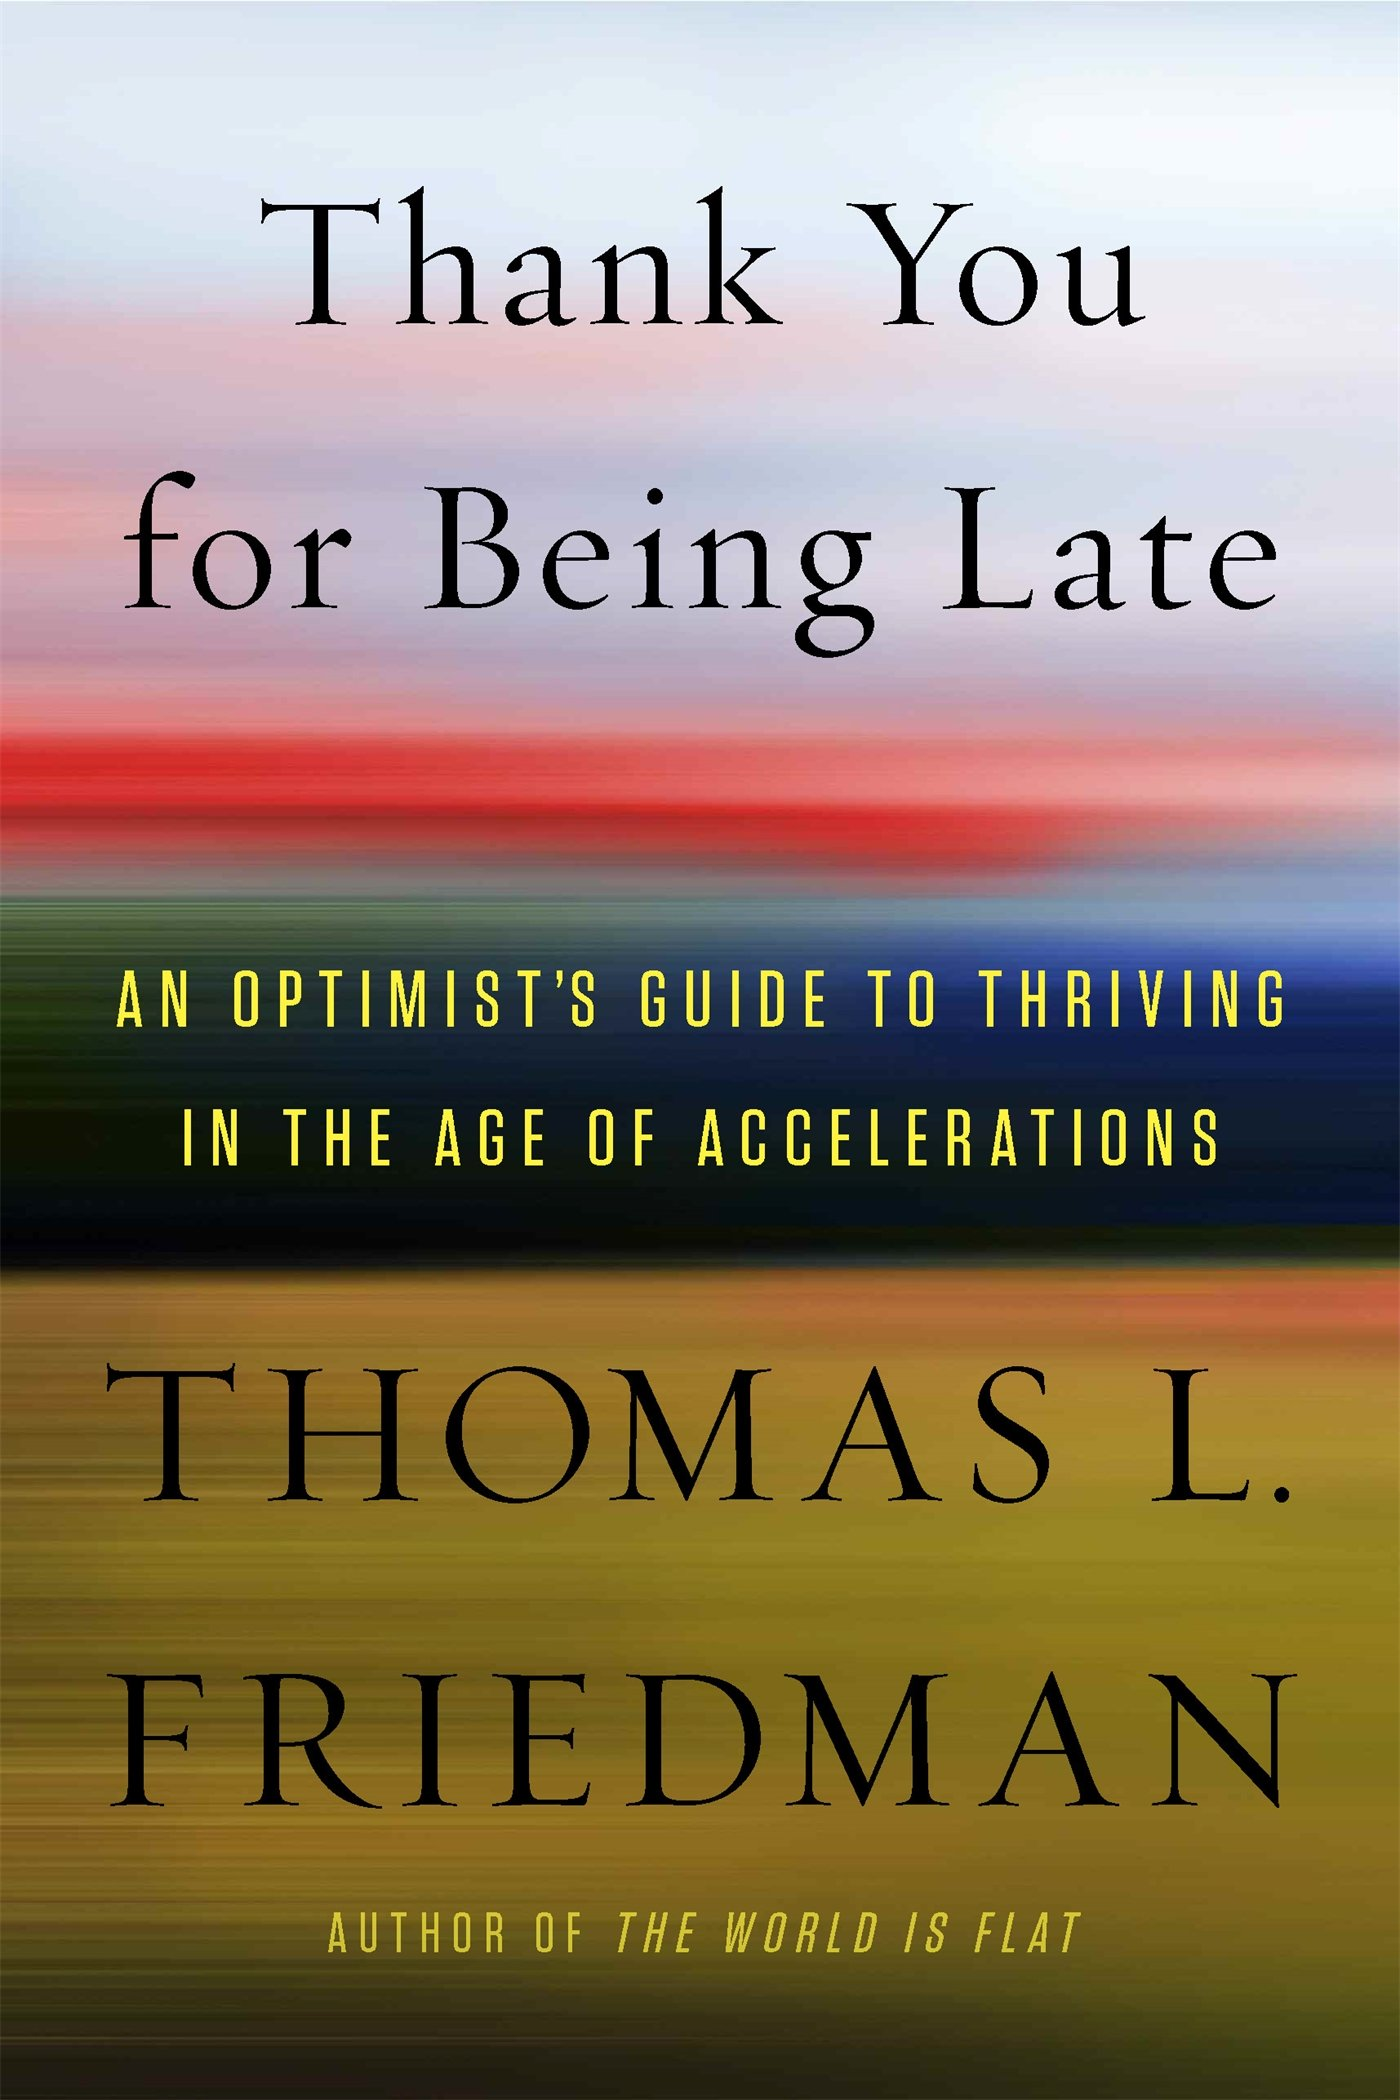 Thank You for Being Late: An Optimist's Guide to Thriving in the Age of Accelerations - From the dawn of the smartphone, our lives have revolved around technology and getting things done, through our phones. Apps that allow you to order dinner and hail a cab within seconds may be second nature to us now, but Thomas Friedman would like to challenge it all. He toys with the idea of slowing down, daring to be late and using that time to rethink our relationship with work, politics and our community.